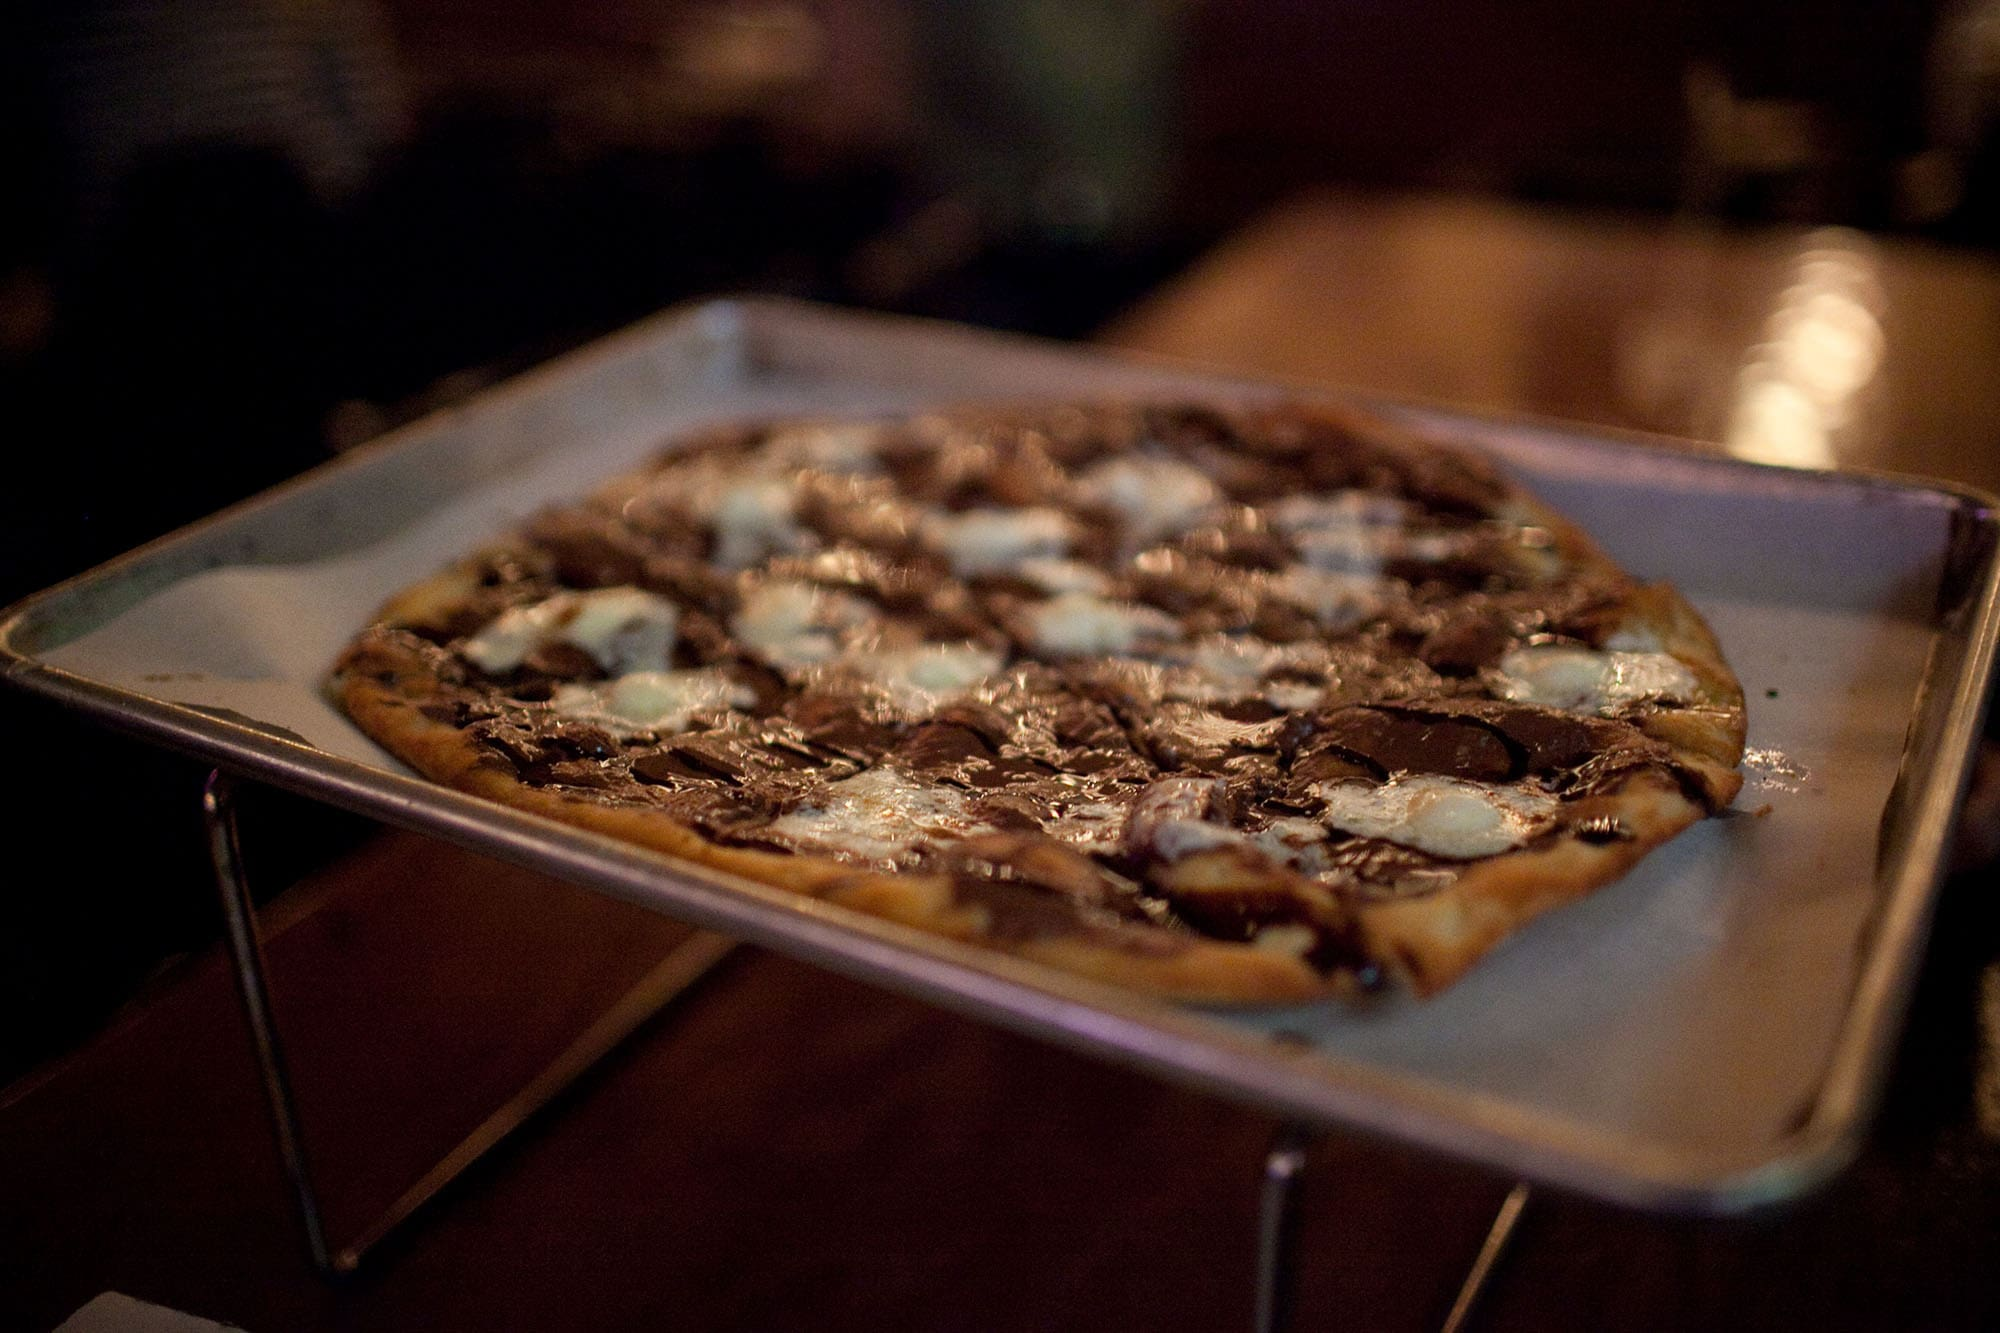 Chocolate pizza from Piece.